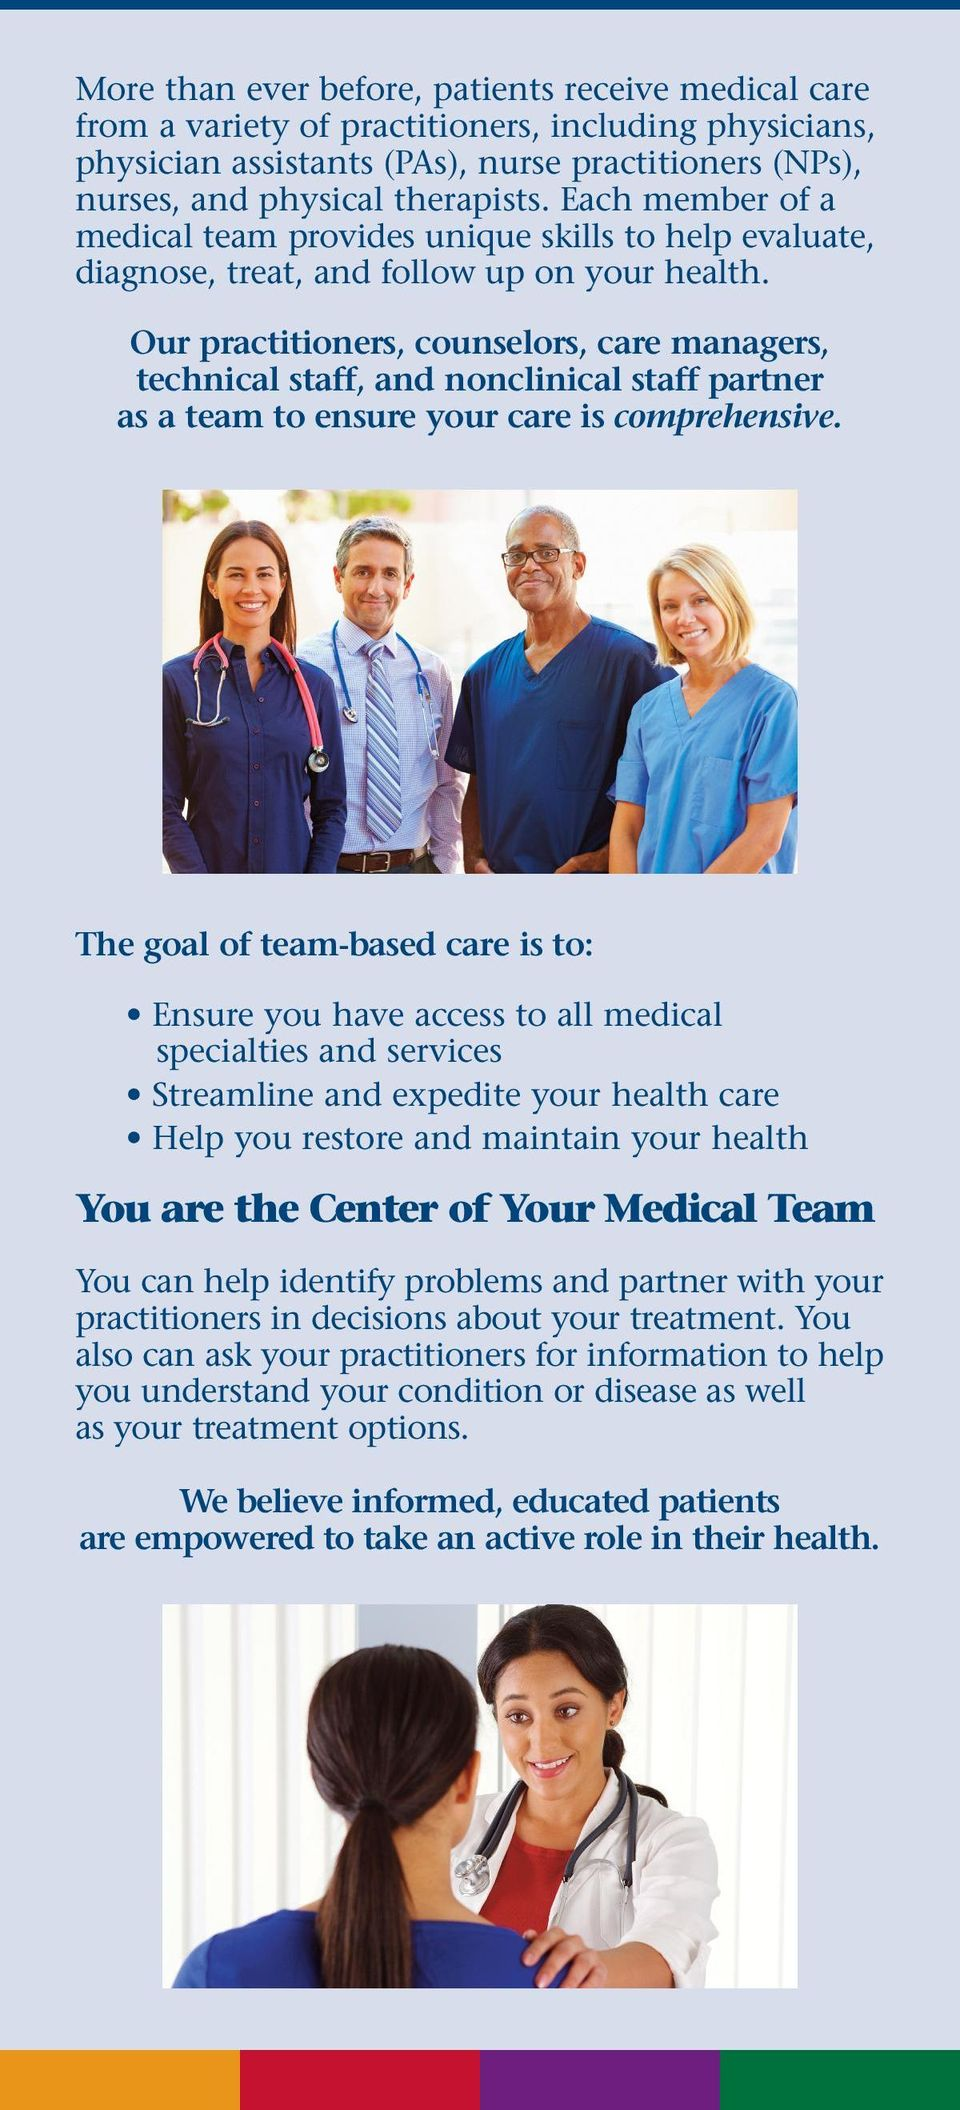 Our practitioners, counselors, care managers, technical staff, and nonclinical staff partner as a team to ensure your care is comprehensive.